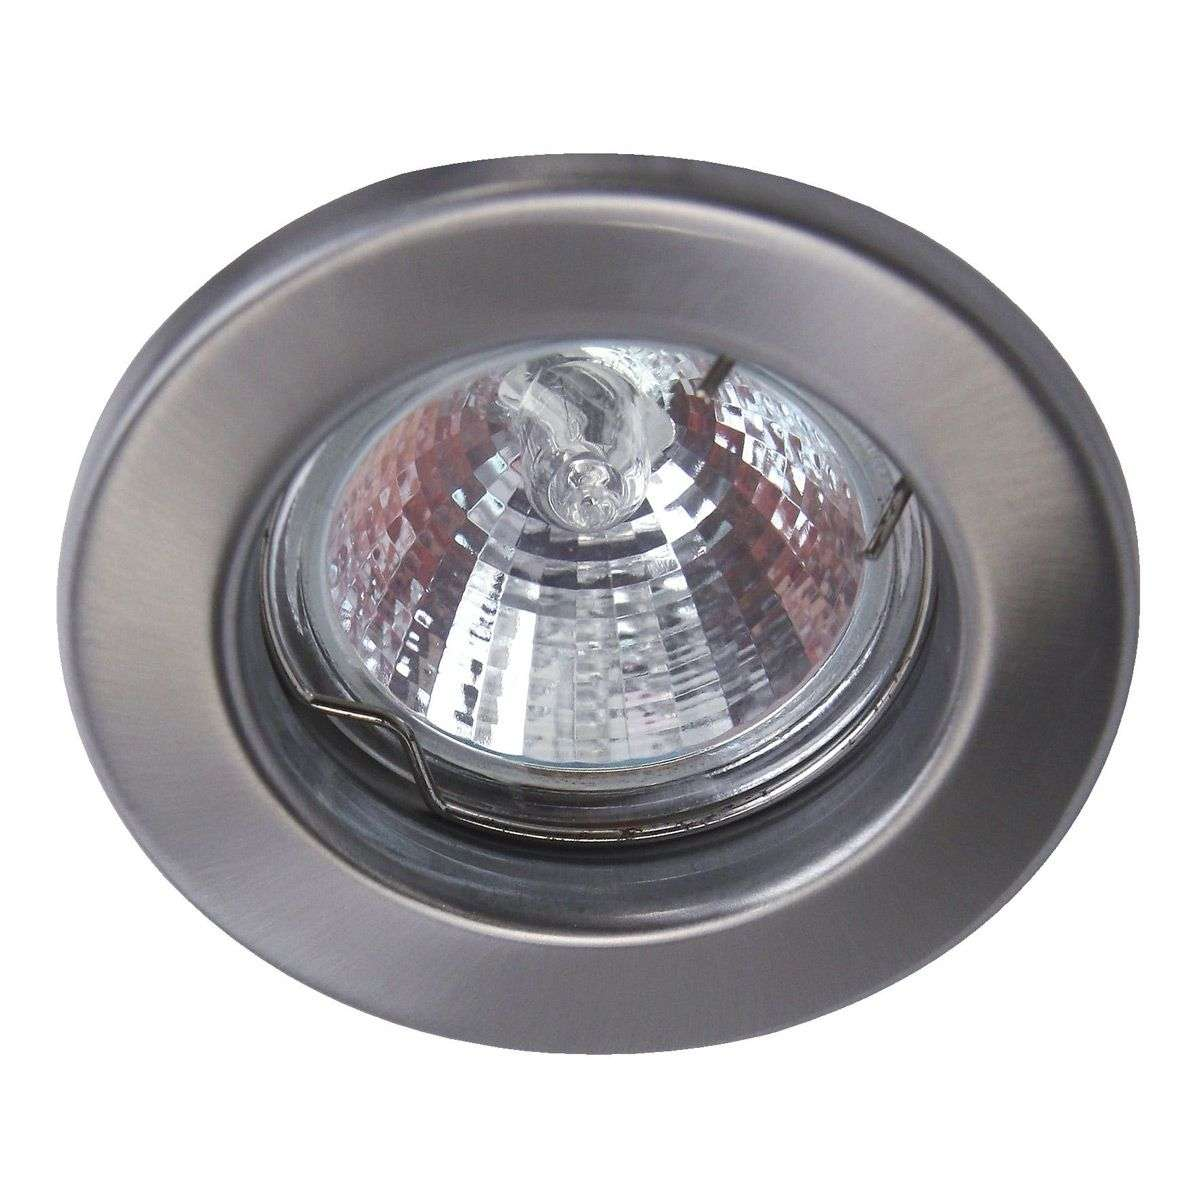 Low voltage recessed light stainless steel mr16 lights low voltage recessed light stainless steel mr16 9504107 31 arubaitofo Images